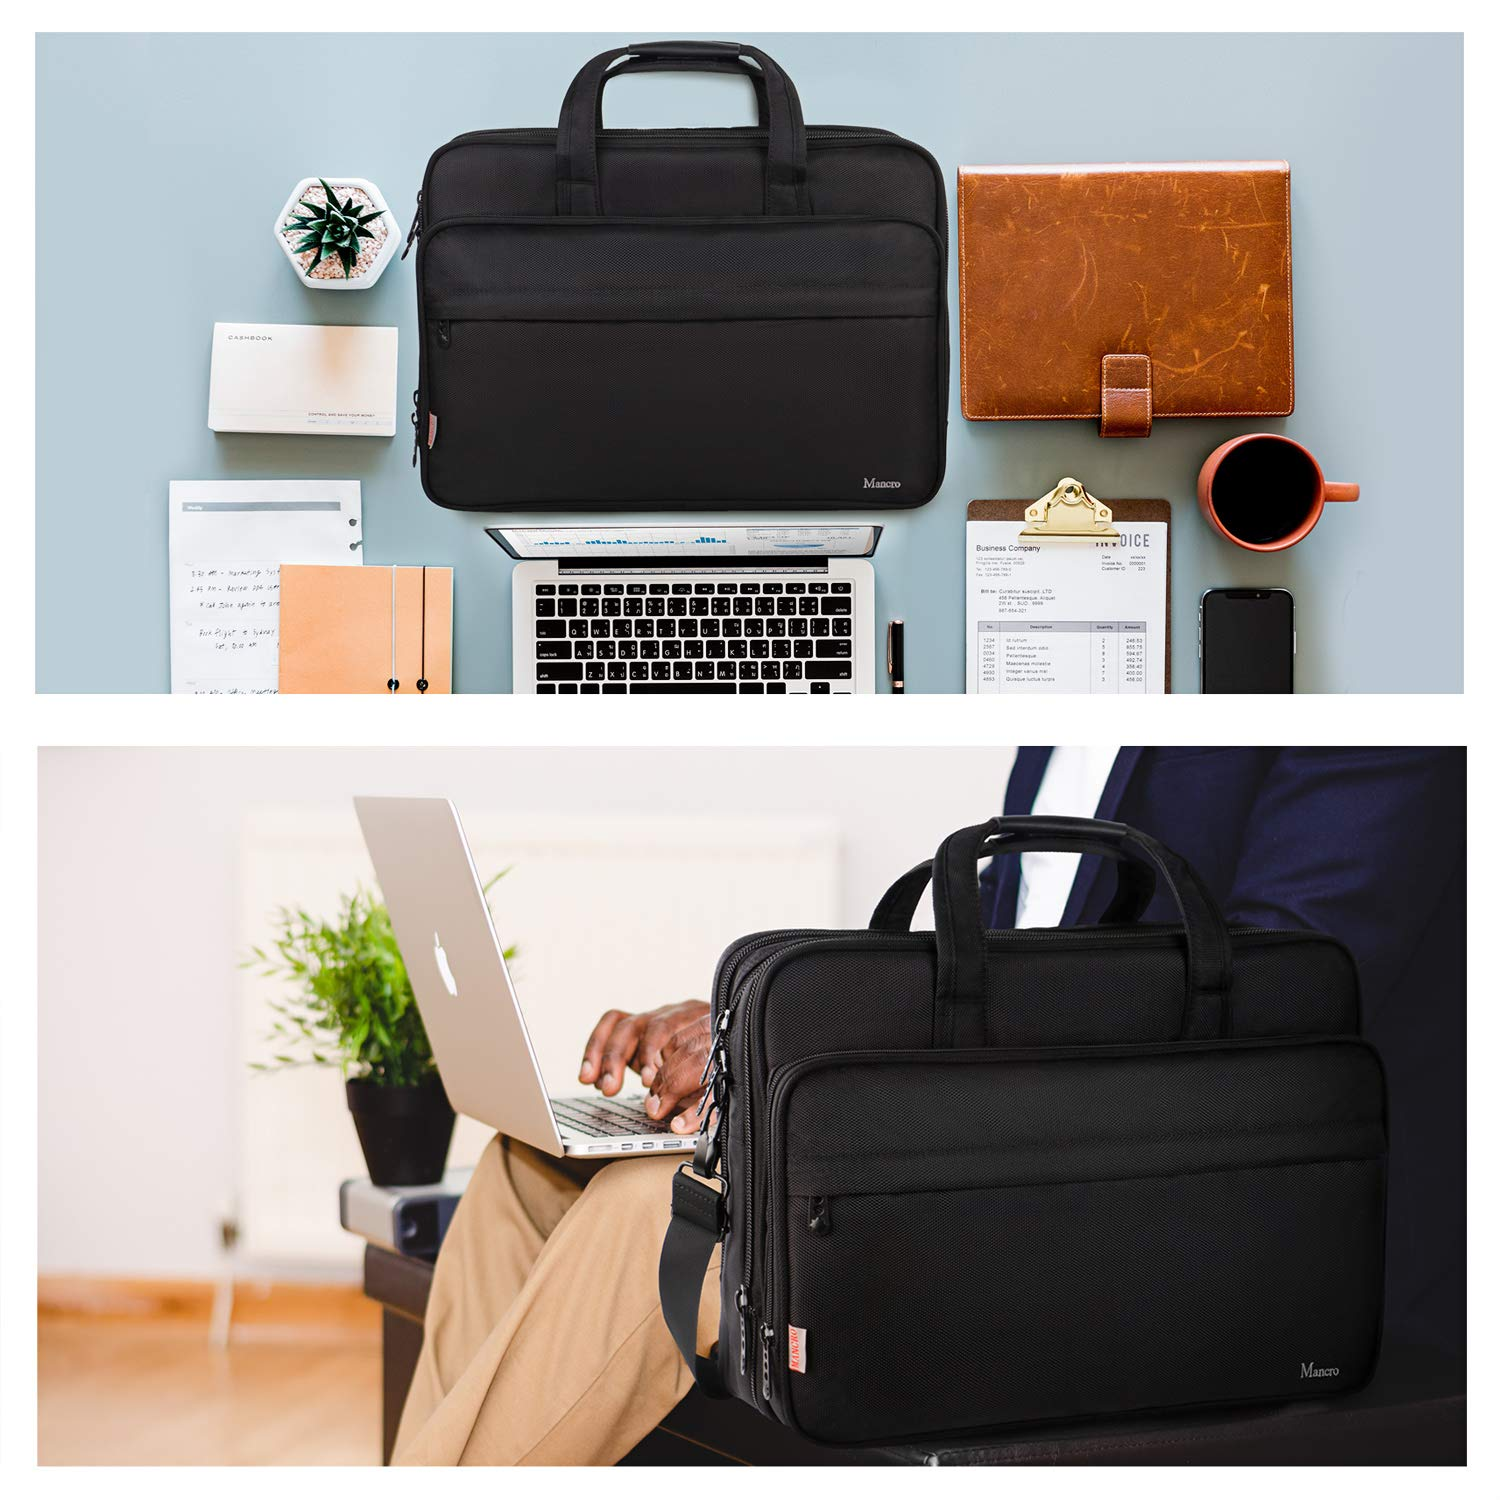 17 inch Laptop Bag, Large Business Briefcase for Men Women, Travel Laptop Case Shoulder Bag, Waterproof Carrying Case Fits 15.6 17 inch Laptop, Expandable Computer Bag for Notebook, Ultrabook by Mancro (Image #7)